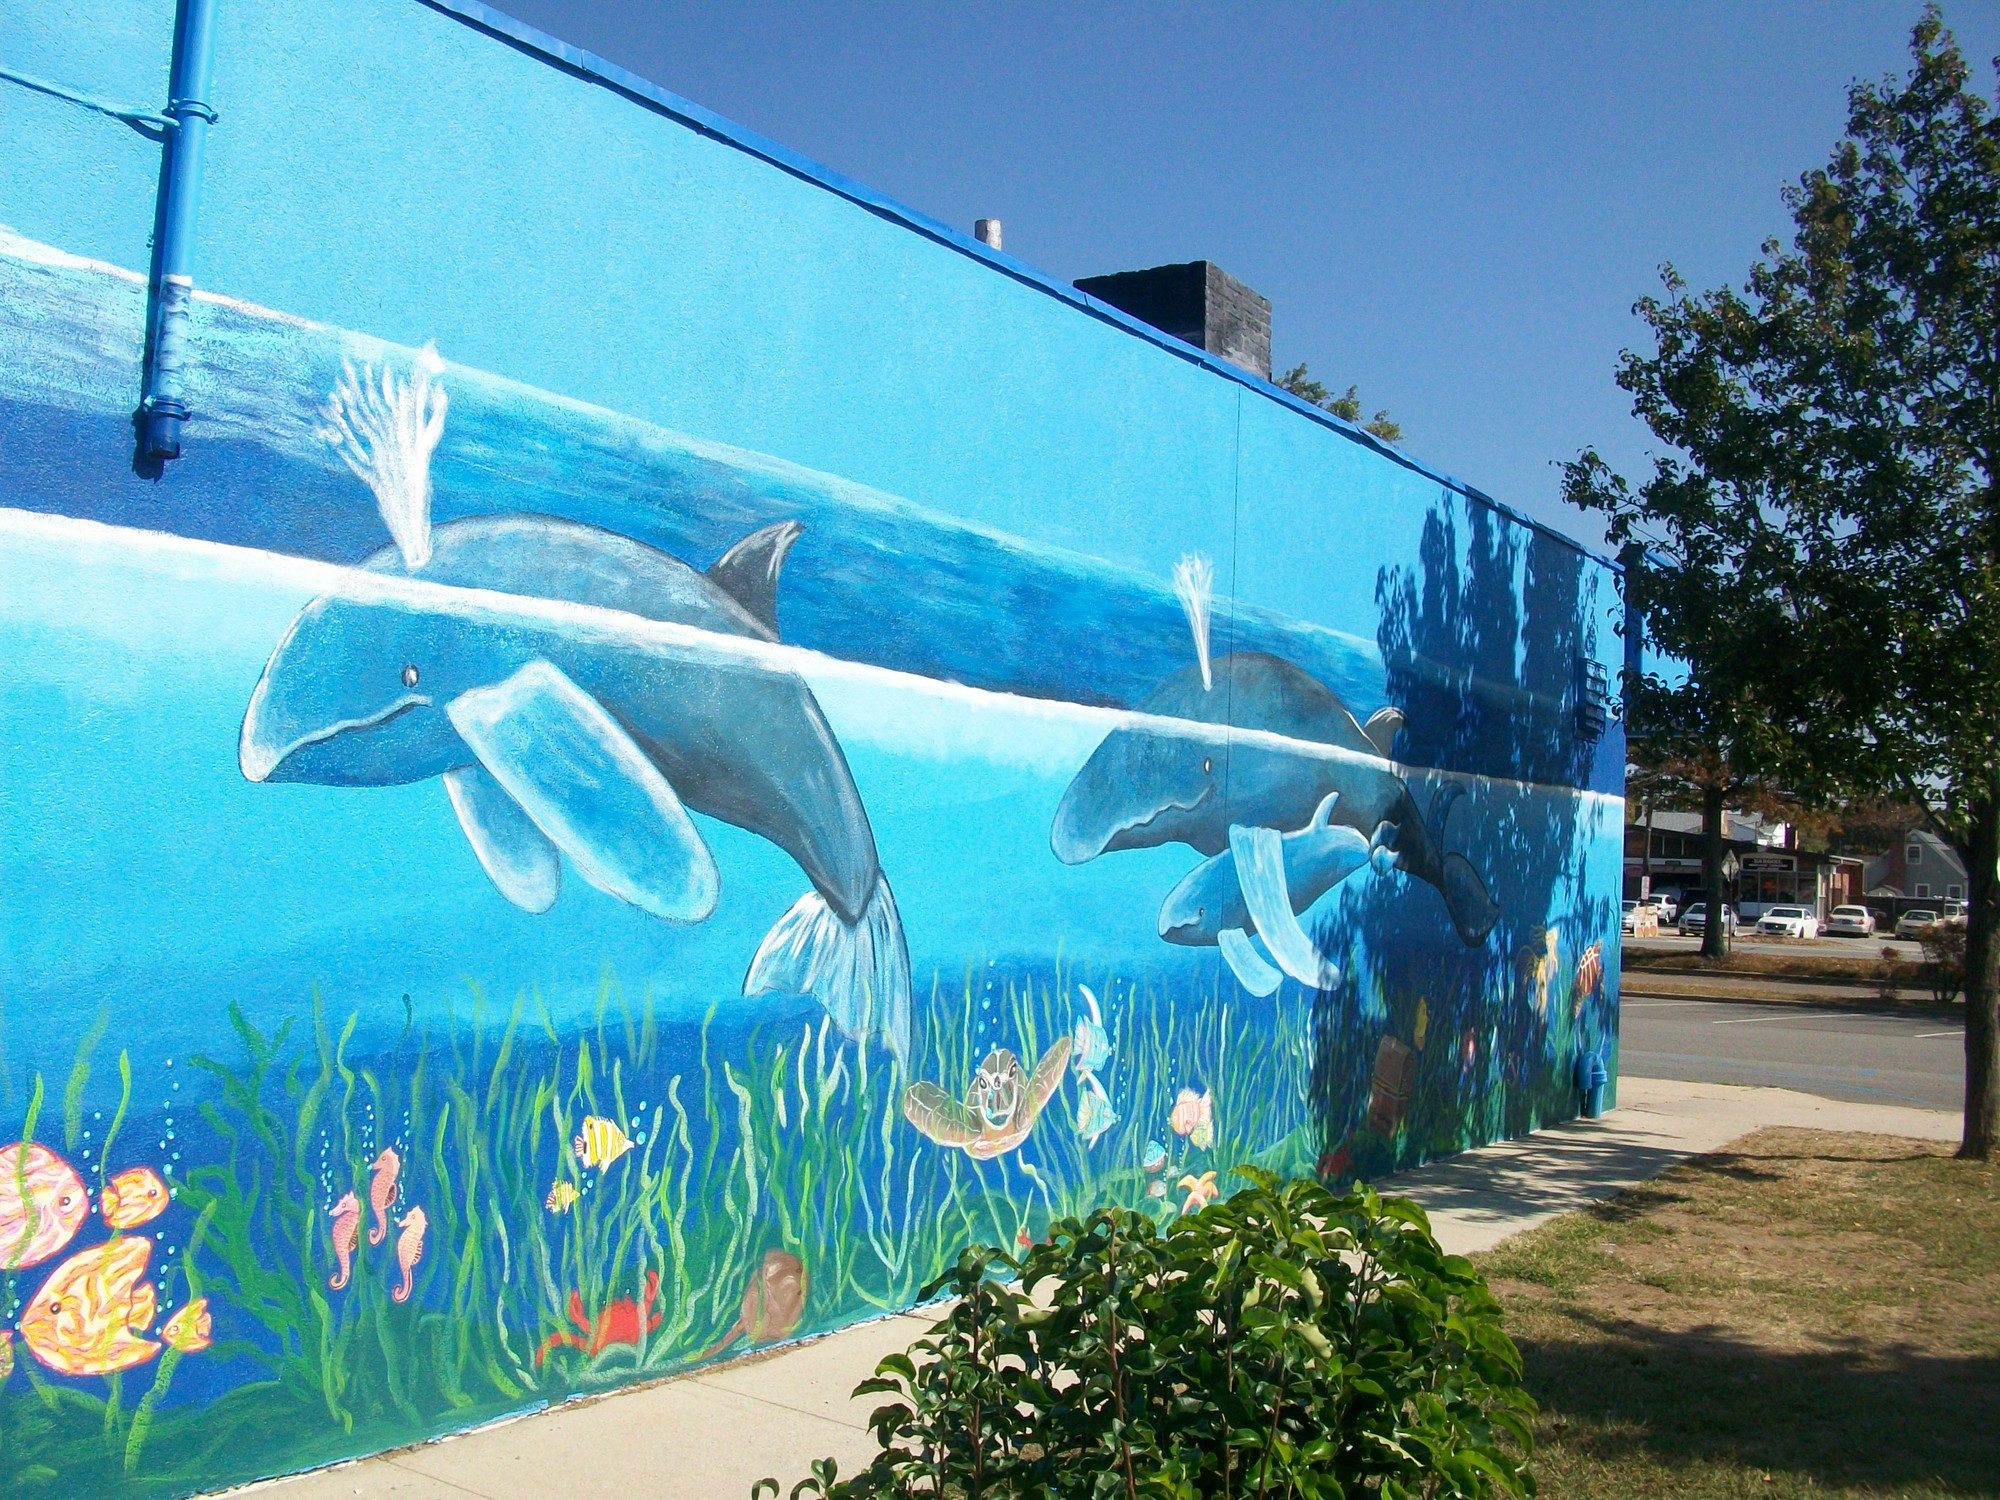 The vibrant, ocean-themed mural, painted by six local Girl Scouts with the help of a professional artist, is on the side wall of Carvel in Salisbury